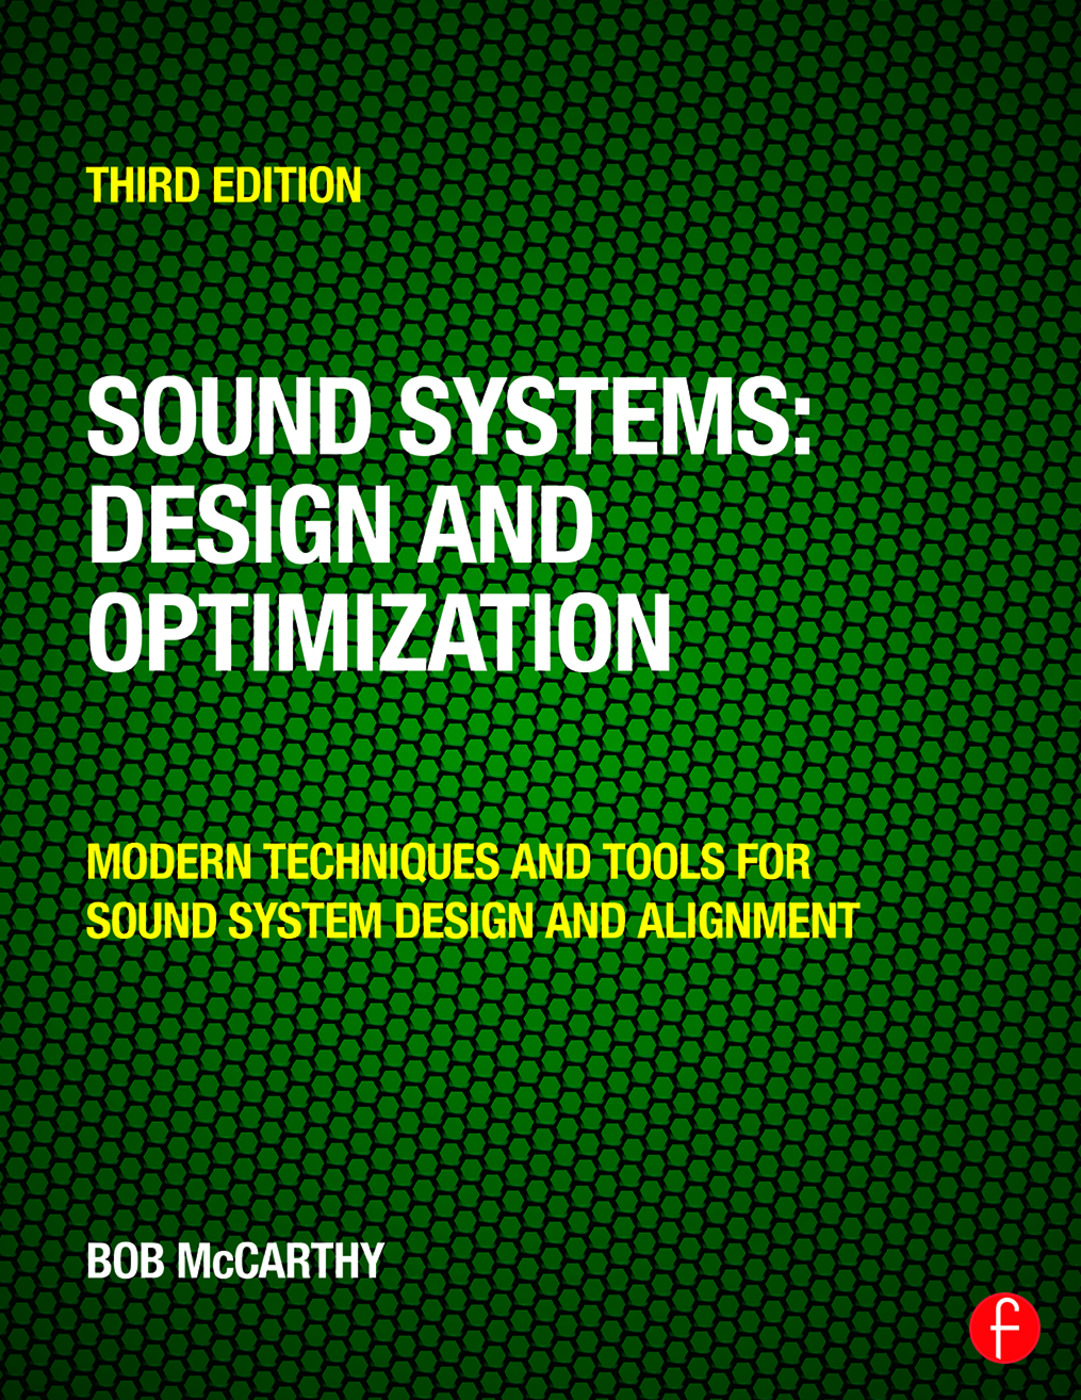 Sound Systems: Design and Optimization: Modern Techniques and Tools for Sound System Design and Alignment, 3rd Edition (Paperback) book cover